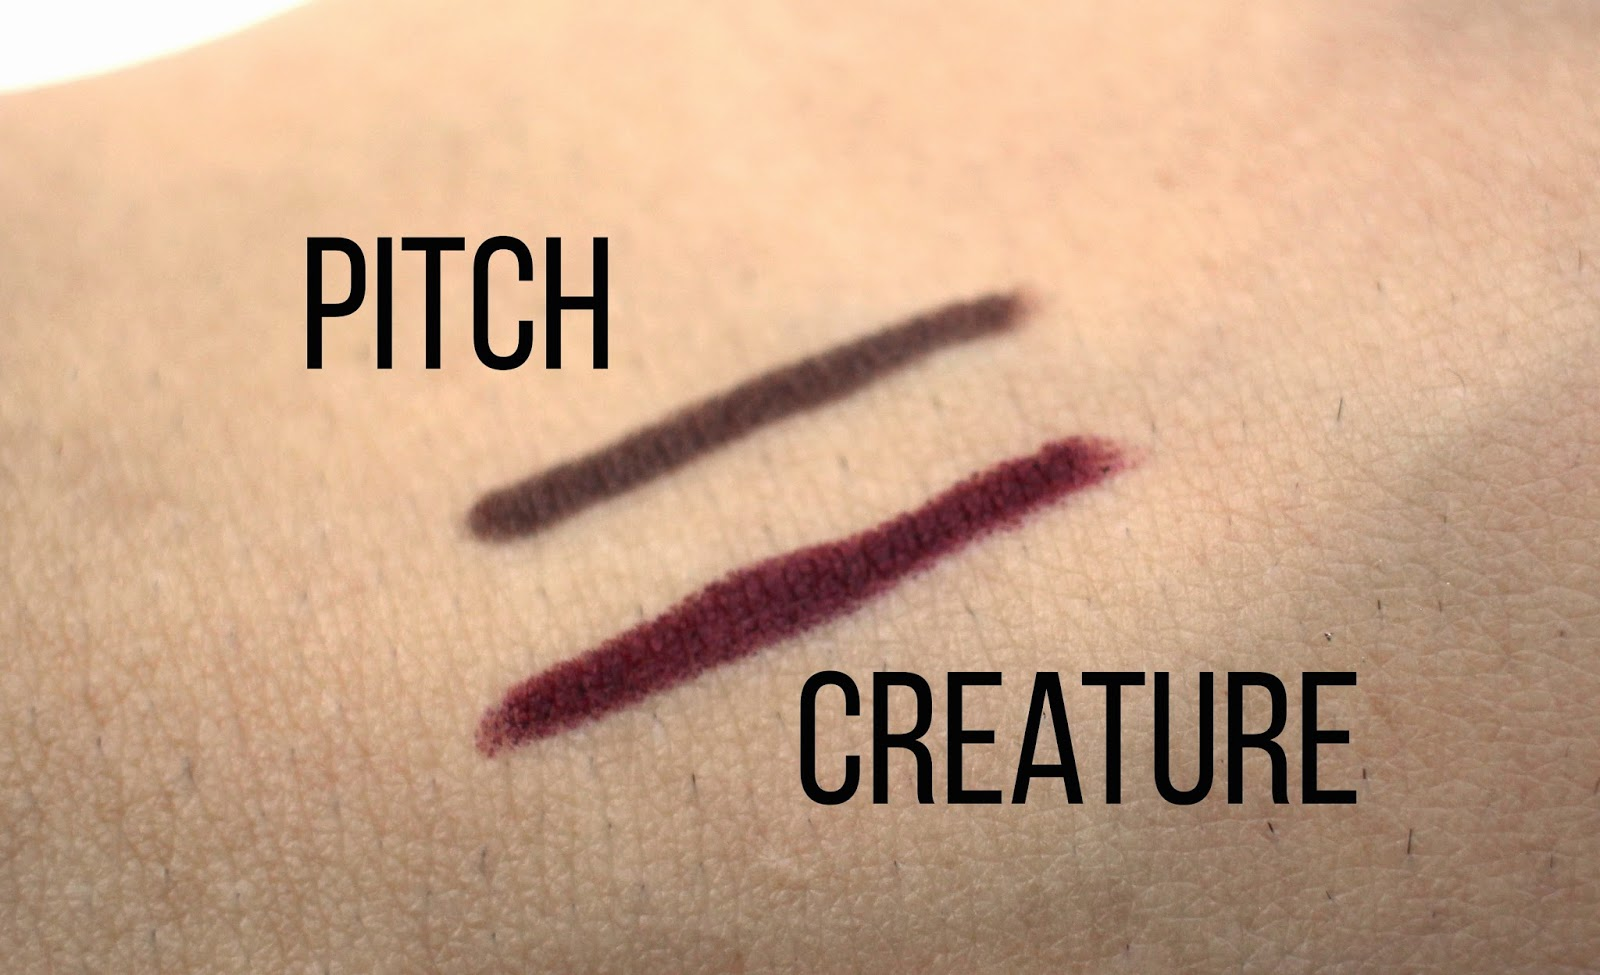 Colour Pop Creature Pitch Lippie Pencil